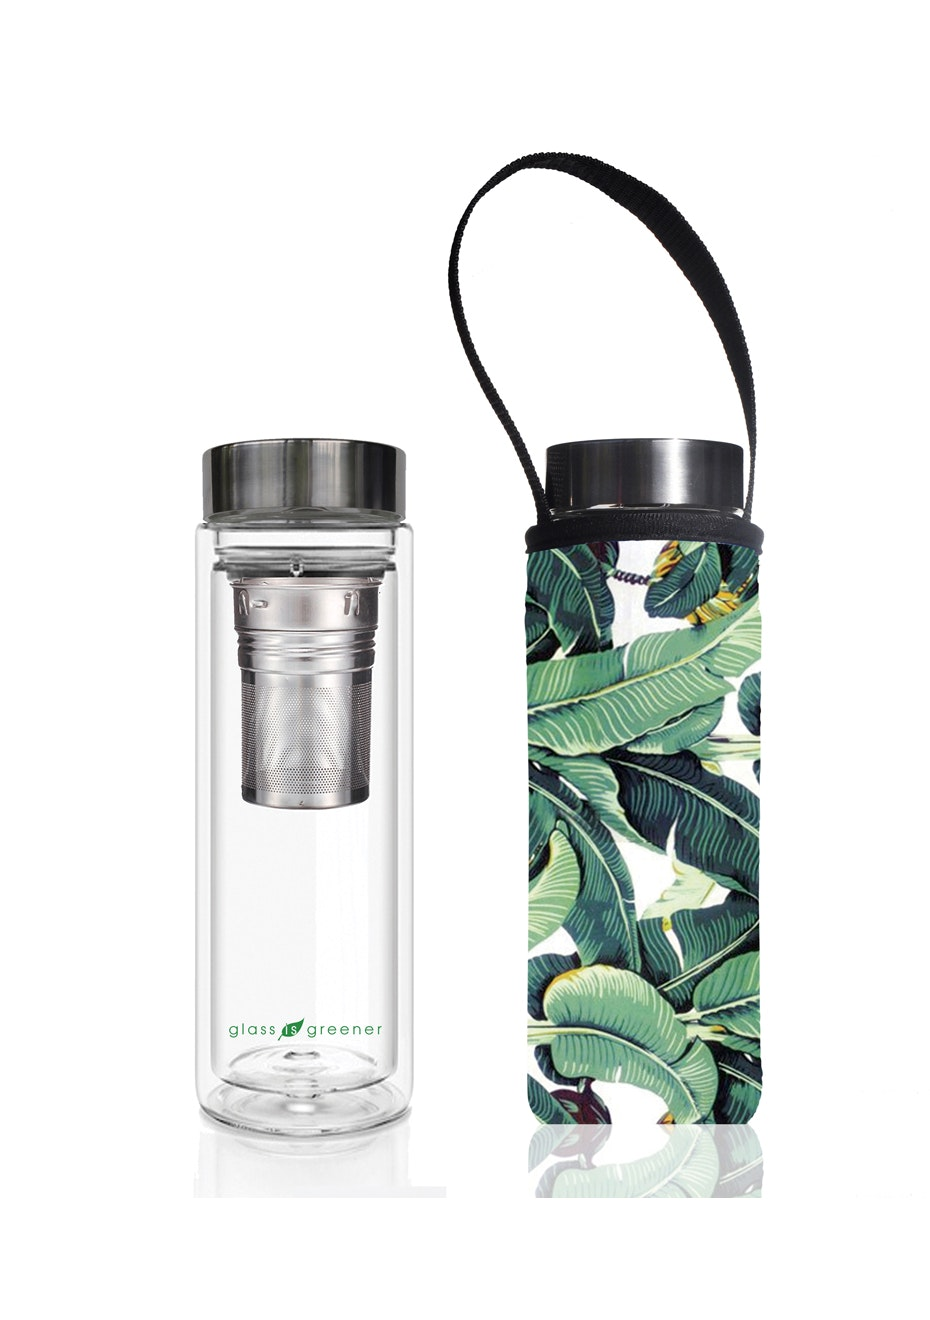 BBBYO - Glass Is Greener double-wall tea flask 500 ml + Carry Pouch (Banana Leaf Print) -500 ml